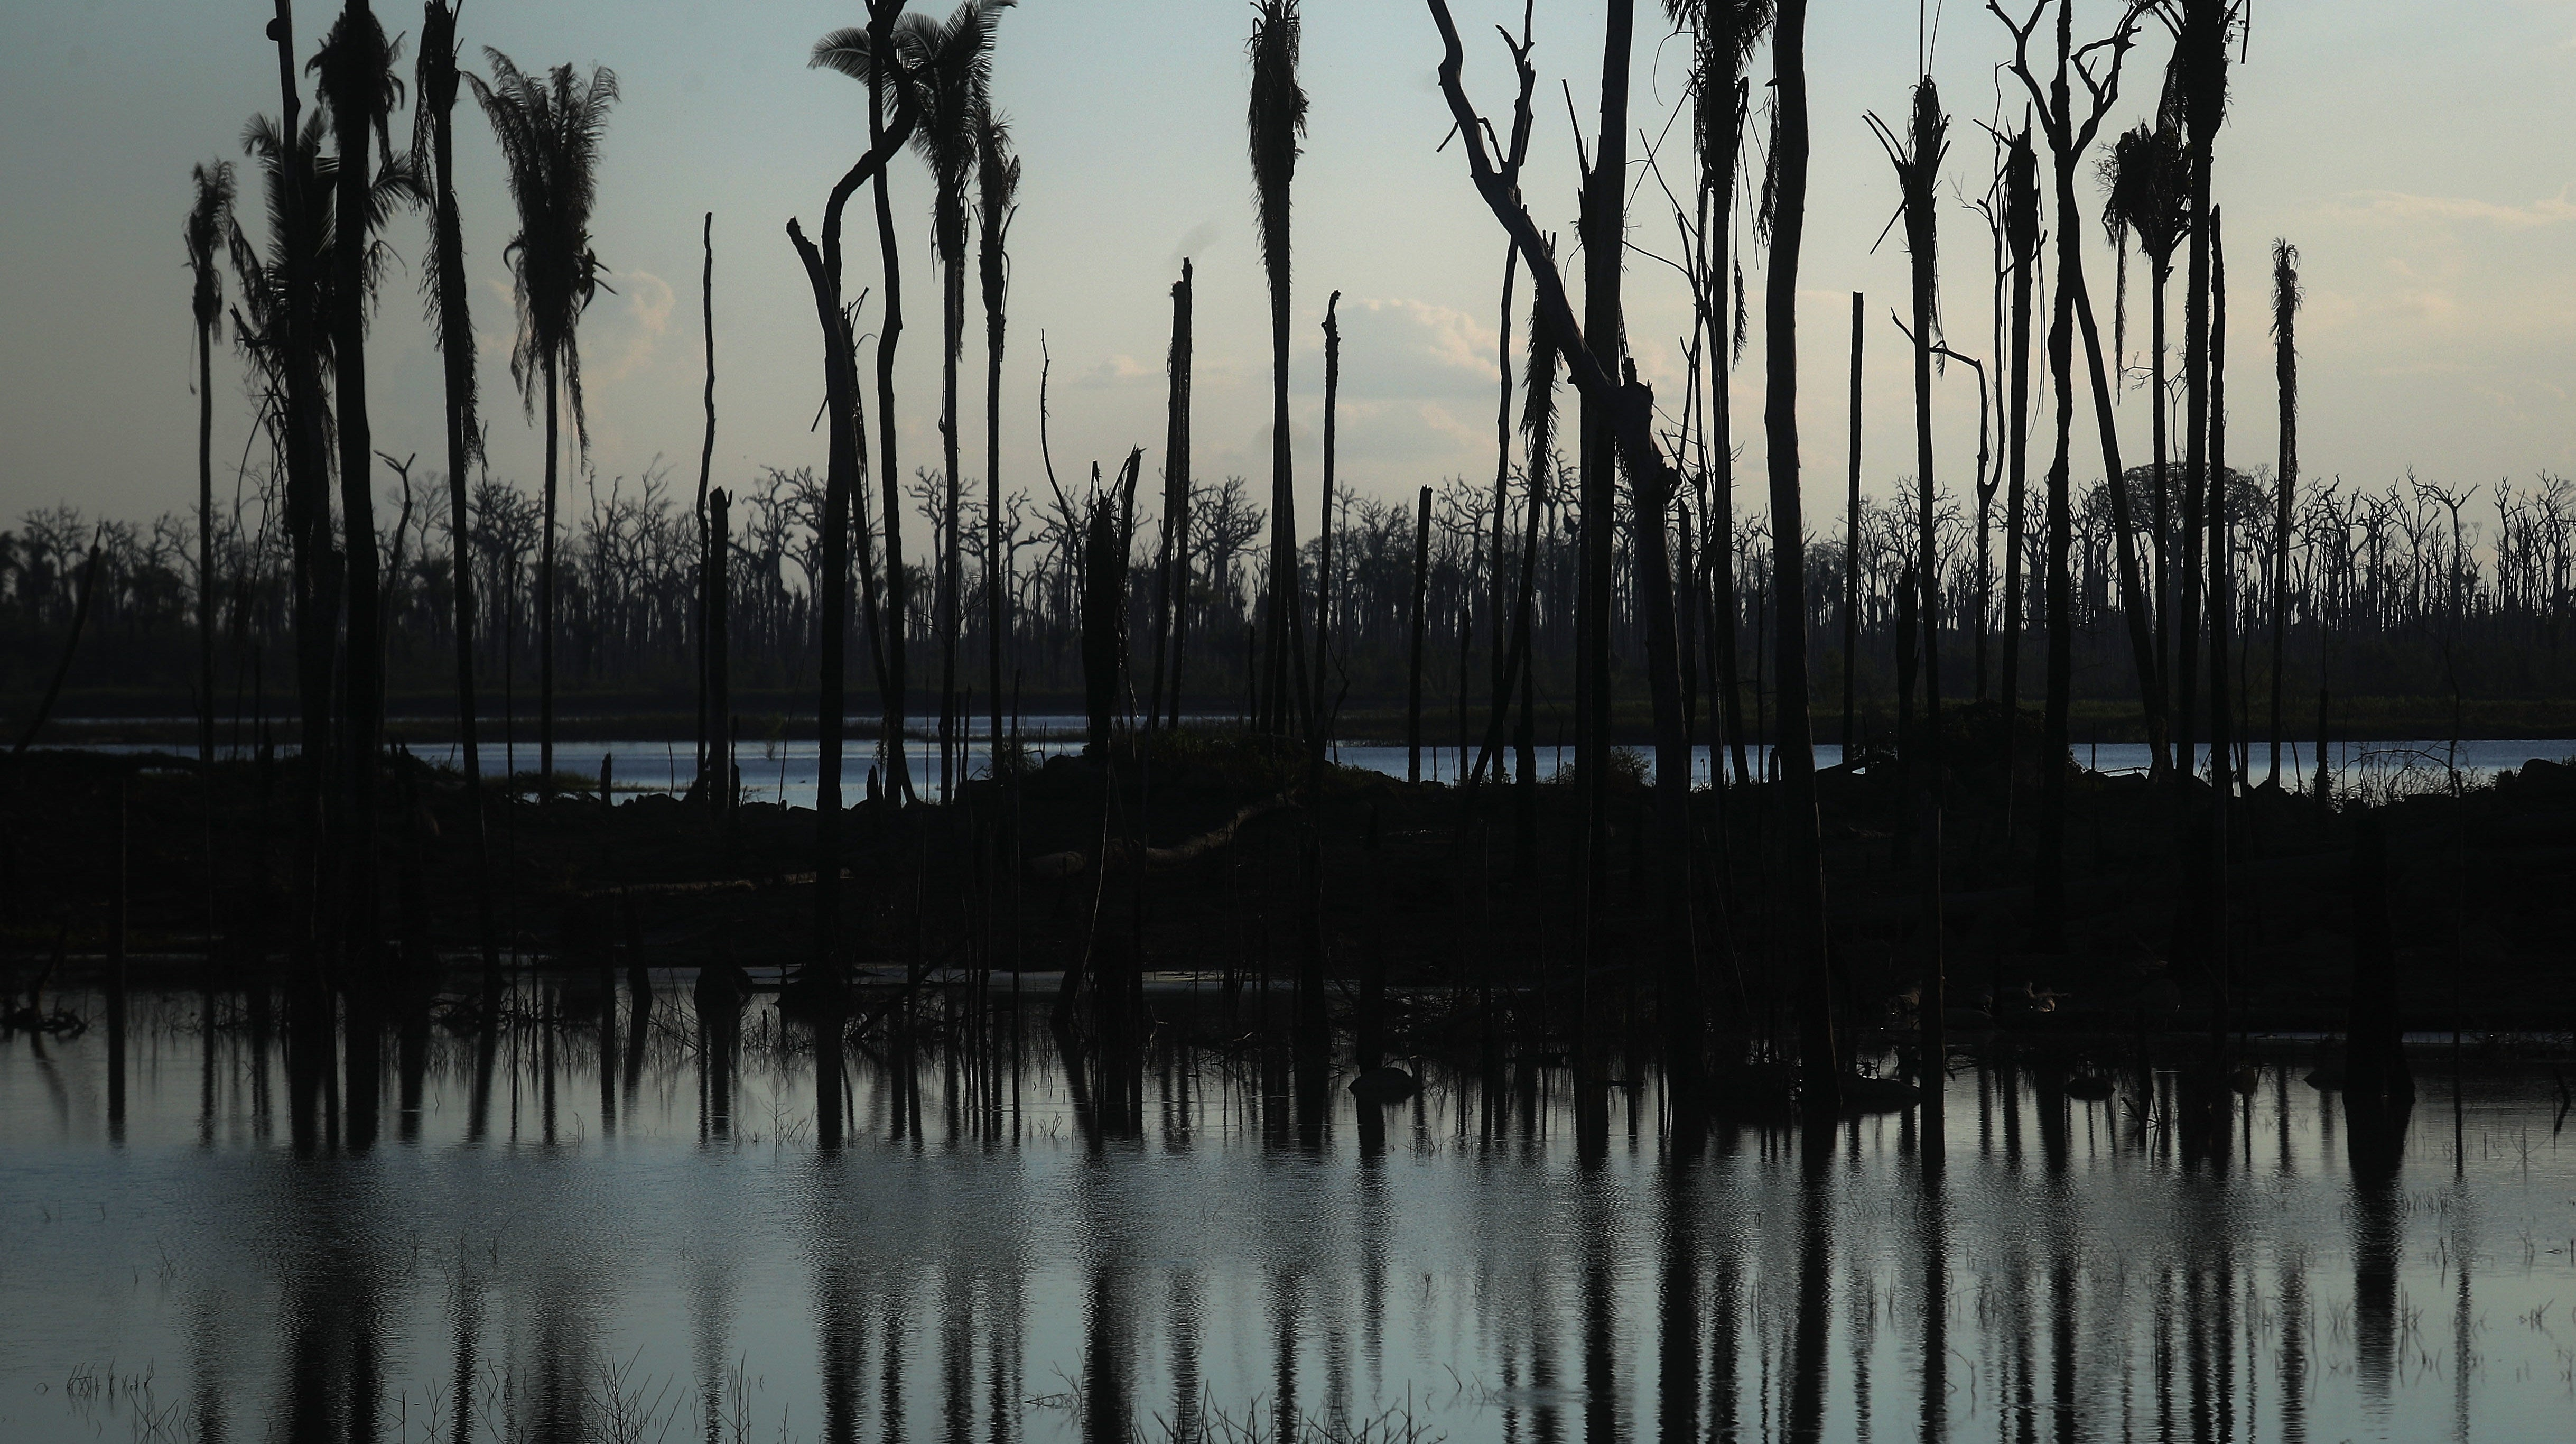 Big Donors Are Pulling Out Of Brazil's Amazon Fund; That Could Spell Trouble For The Rainforest